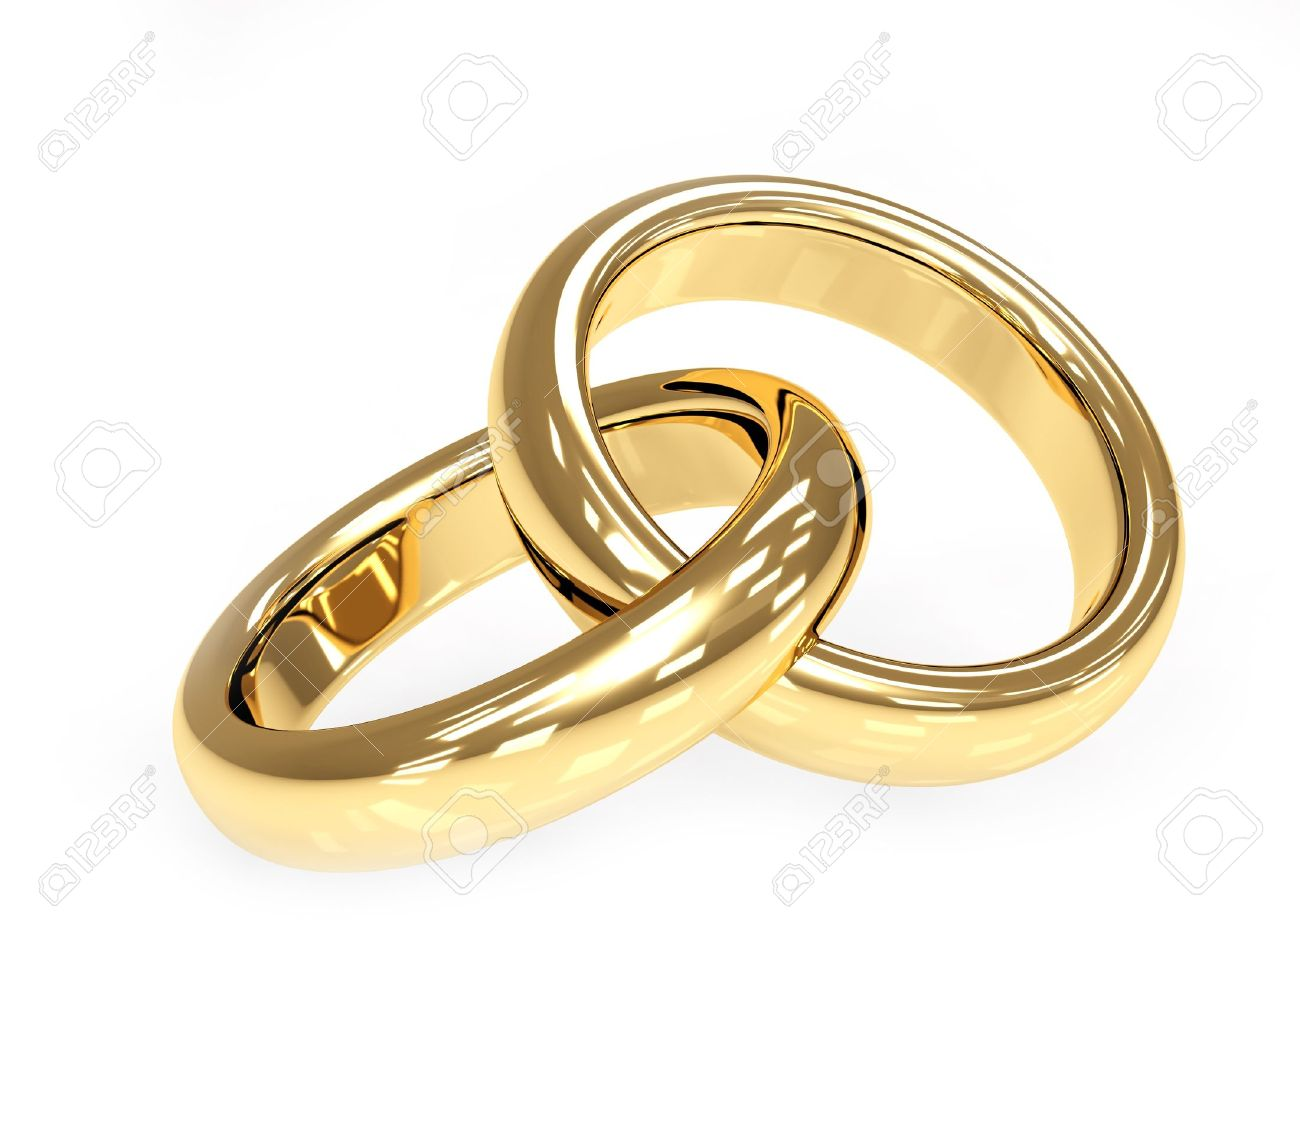 Two 3d gold wedding ring. Objects over white Stock Photo - 4467776